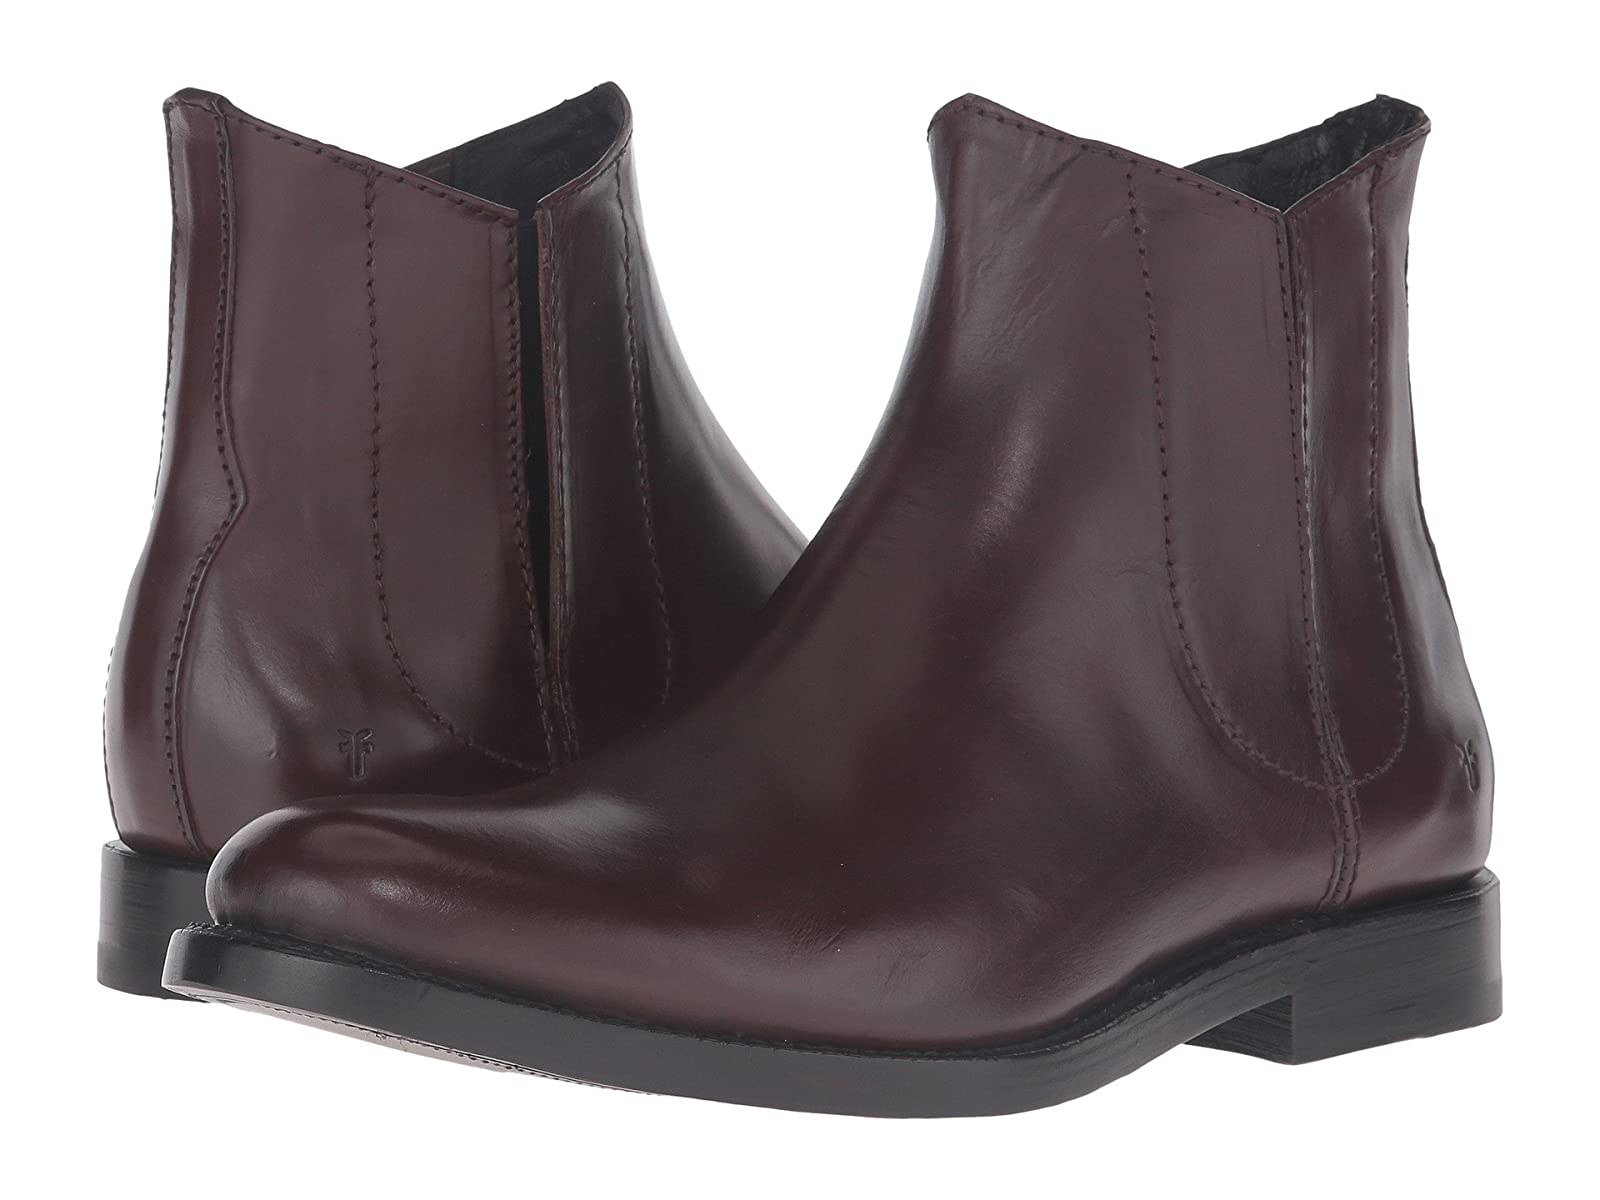 Frye Jet ChelseaCheap and distinctive eye-catching shoes